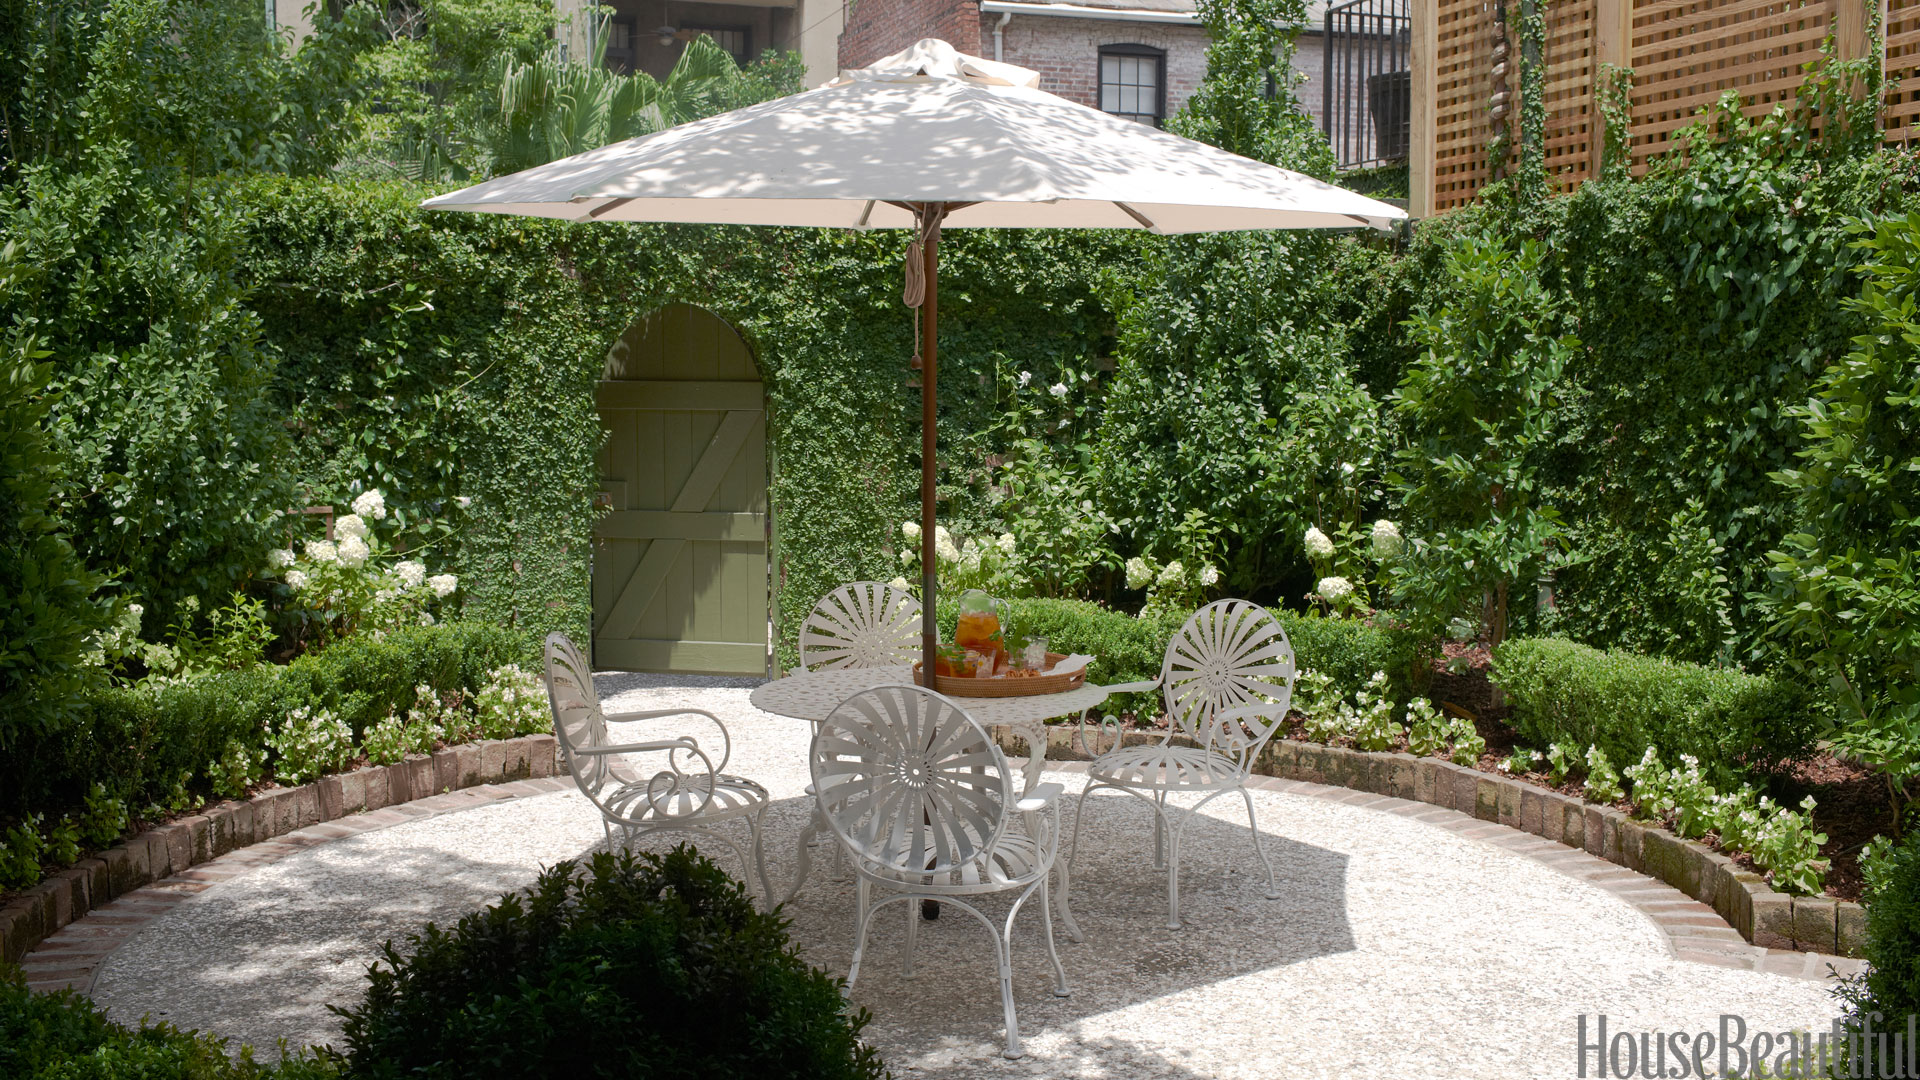 10 outdoor decorating ideas outdoor home decor for Courtyard garden ideas